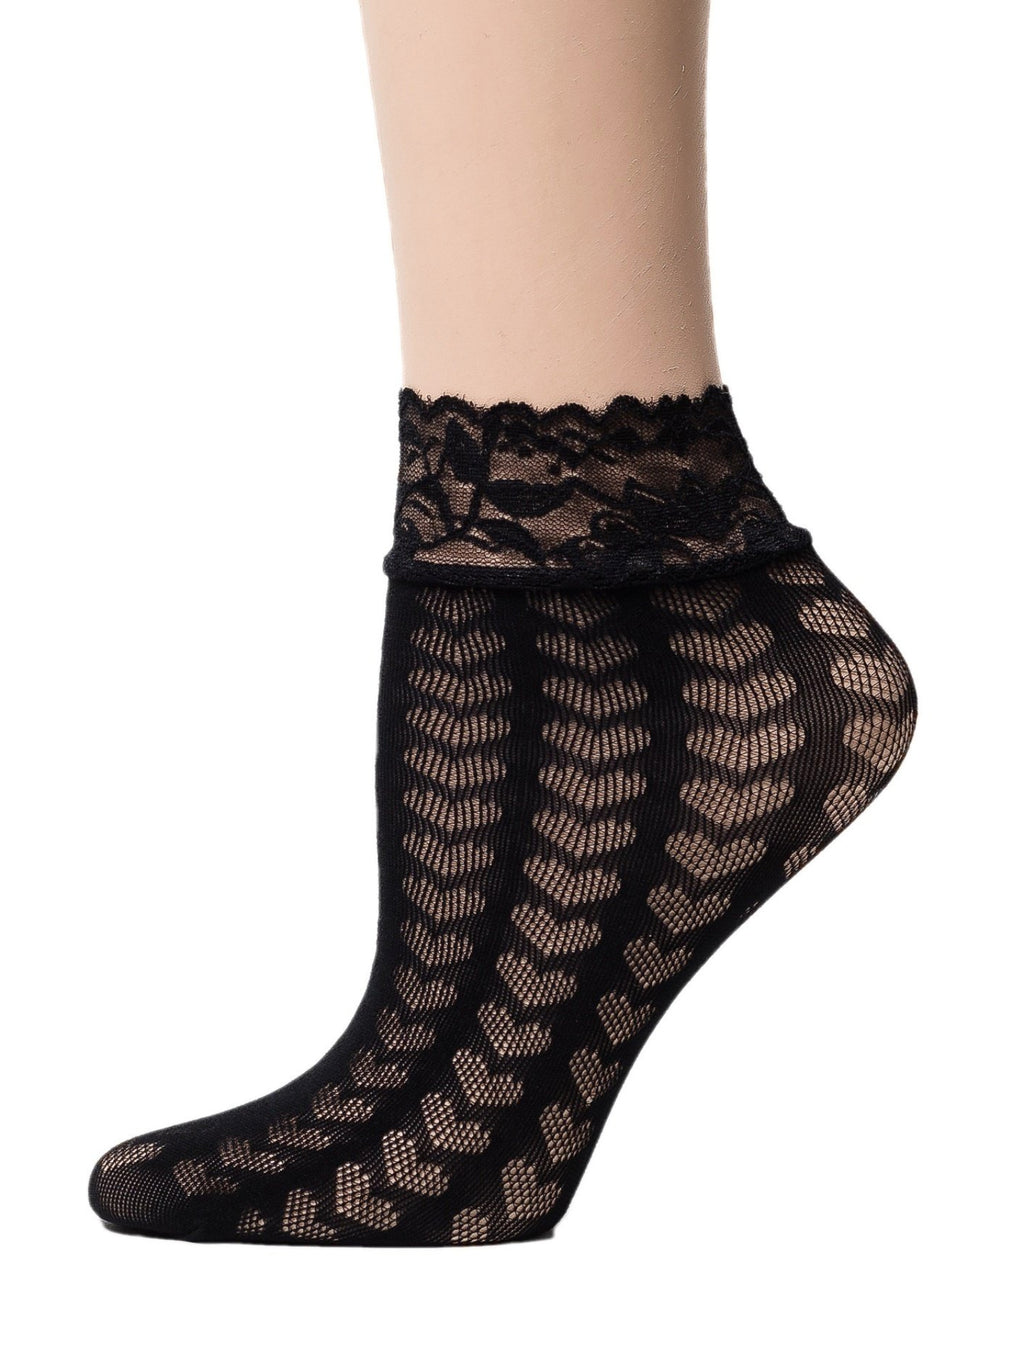 Hearts Black Mesh Socks